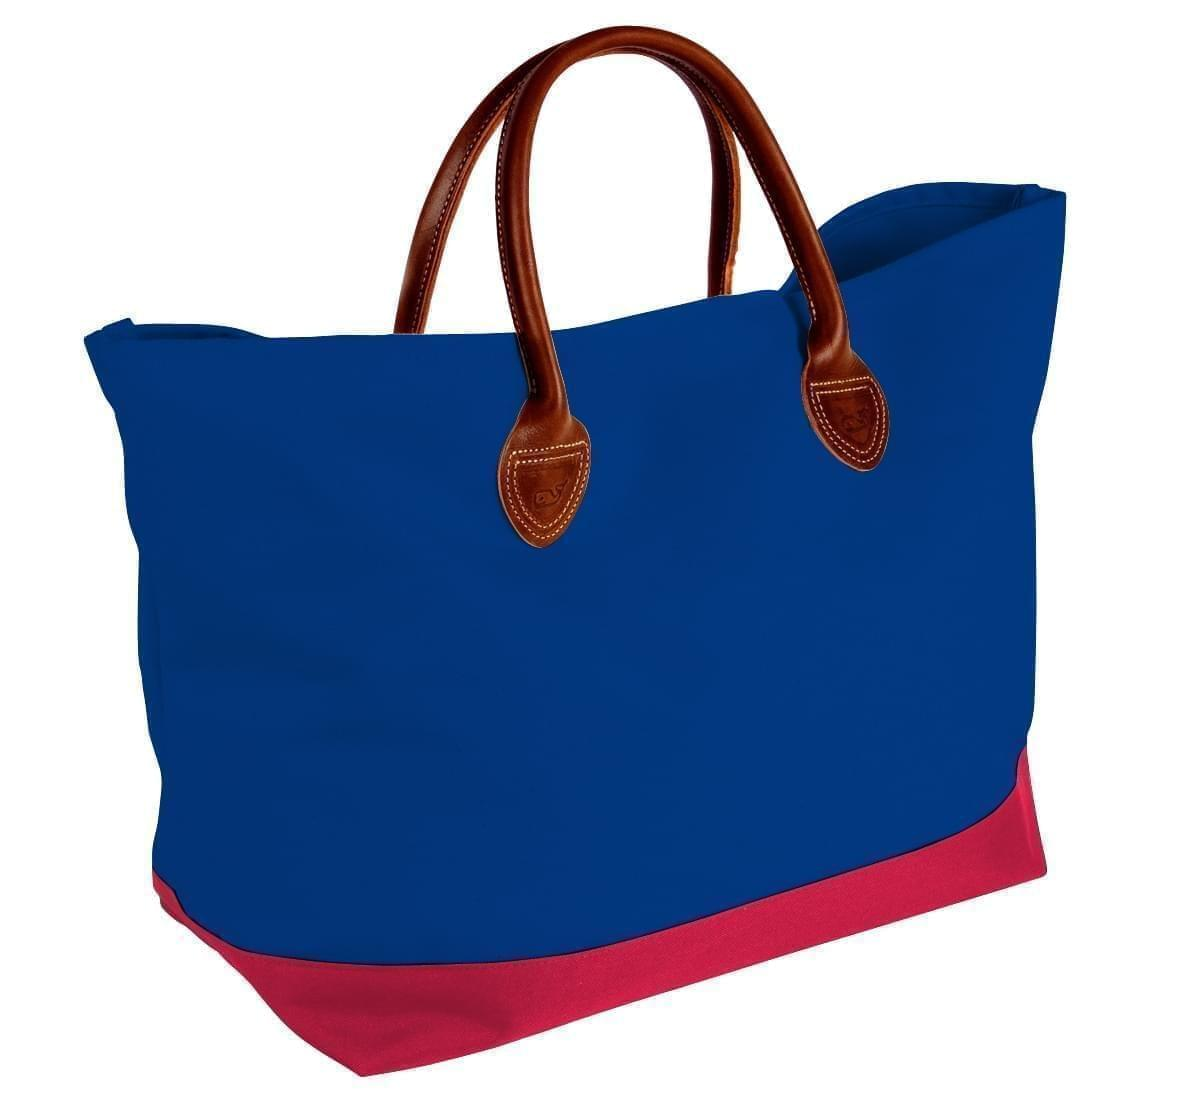 USA Made Canvas Leather Handle Totes, Royal Blue-Red, 10899-LF9